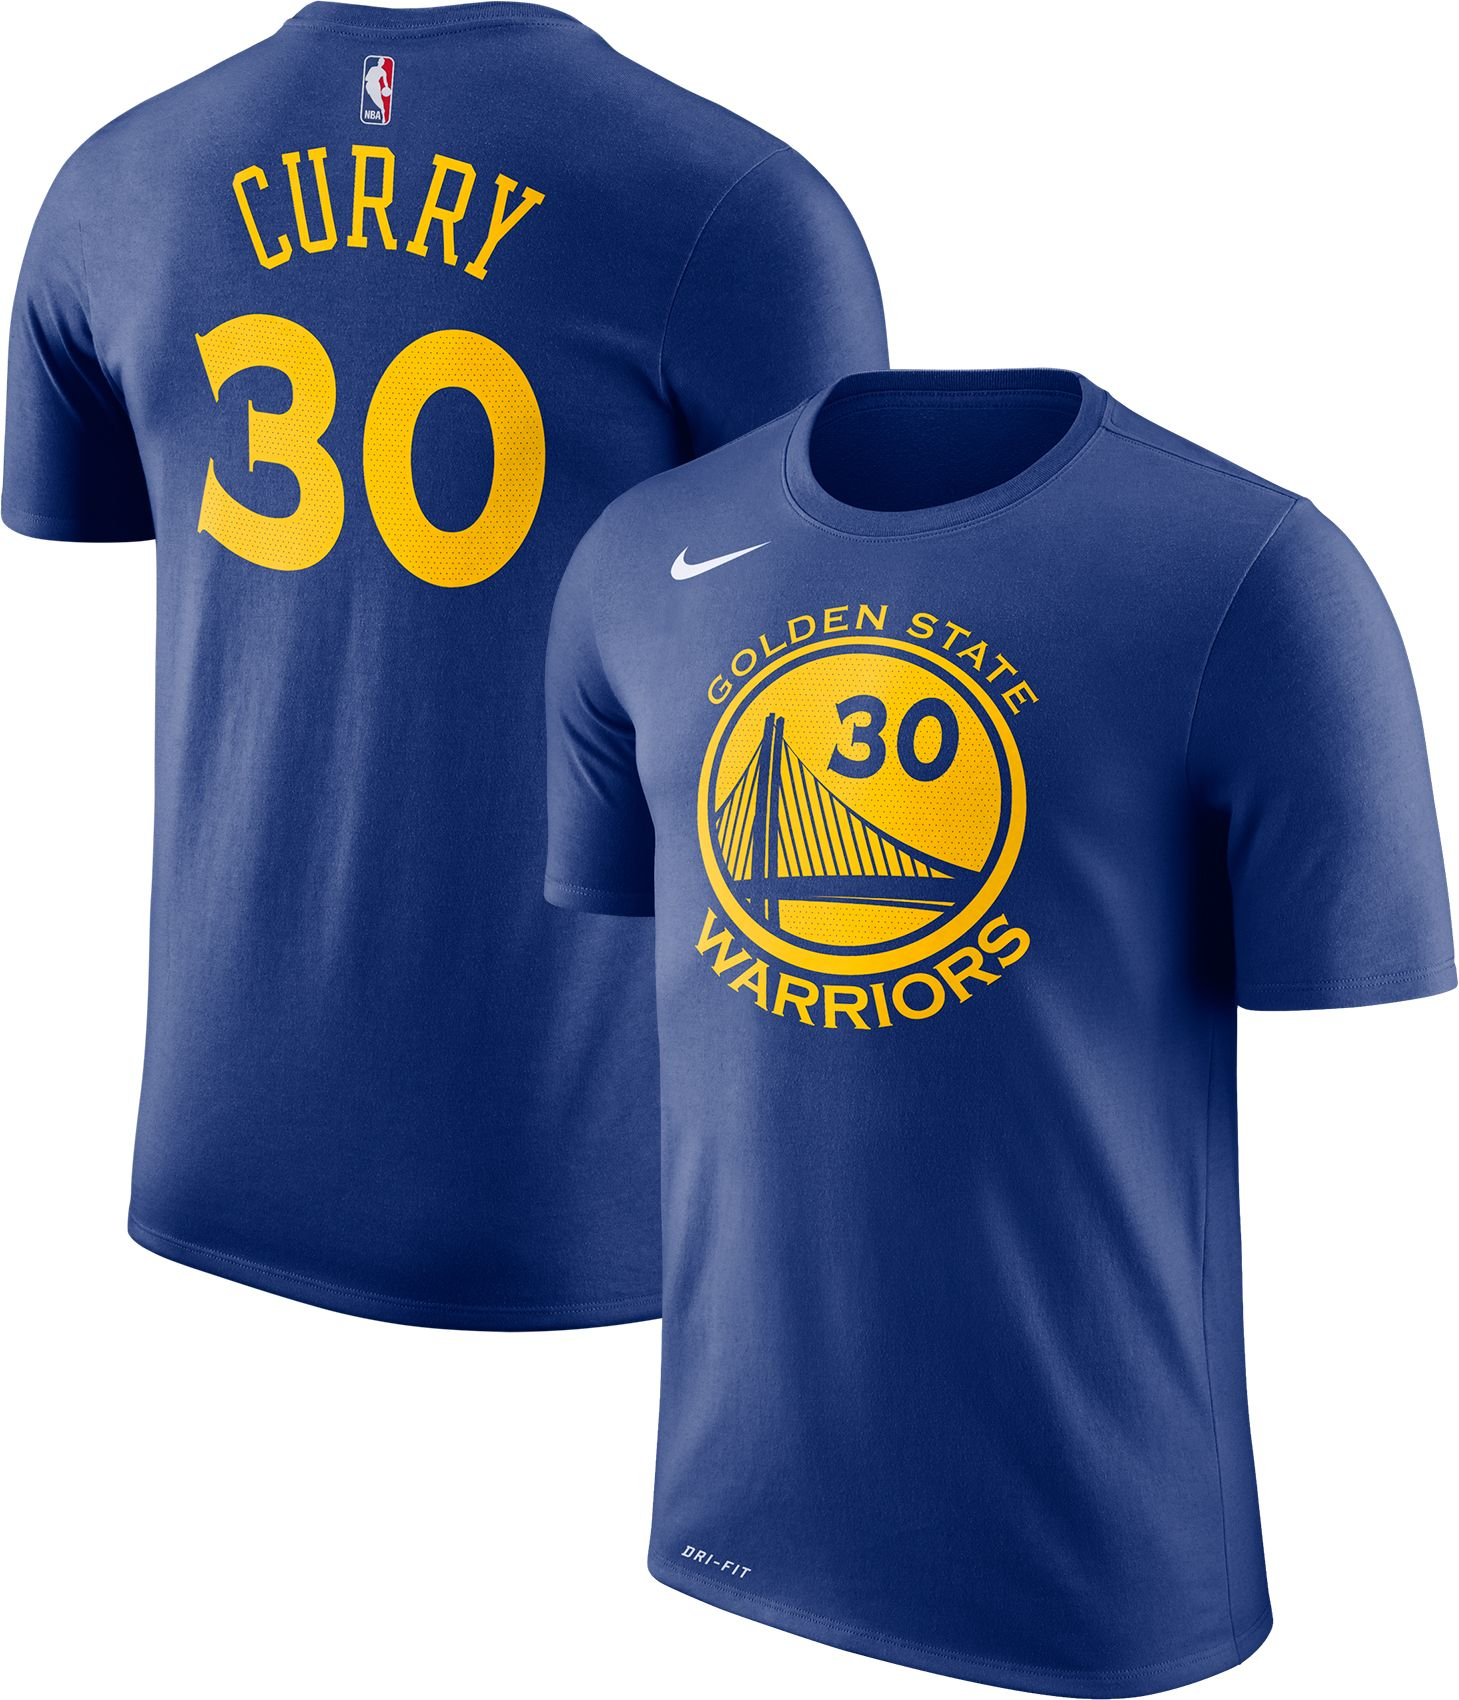 f3905b21470f stephen curry t shirts youth LeBron James leads the NBA jersey sales